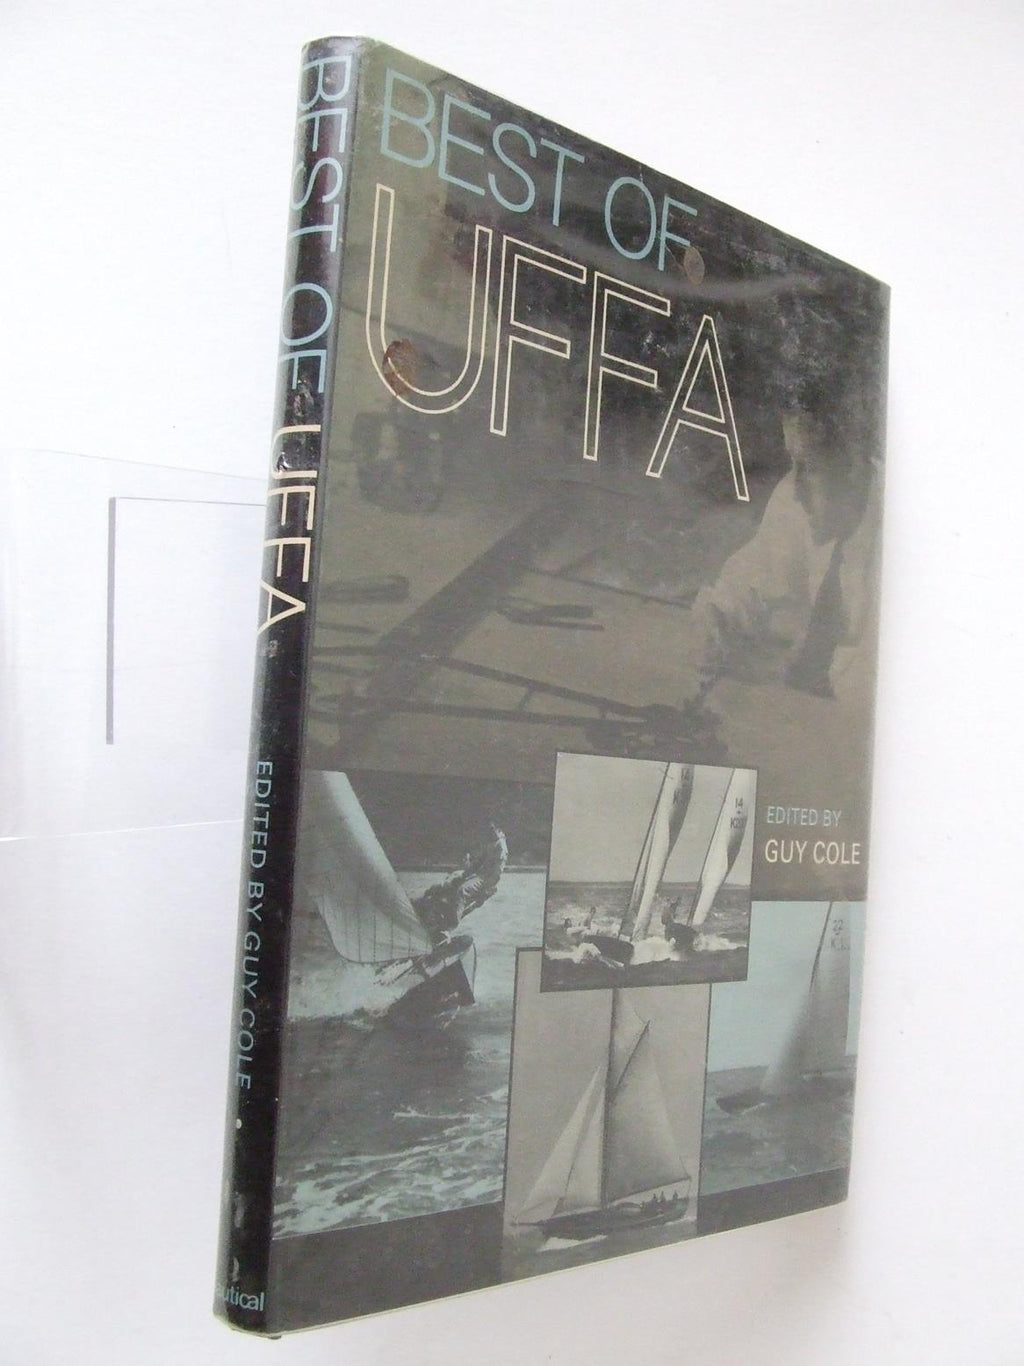 Best of Uffa. immortal designs from Uffa Fox's five famous volumes